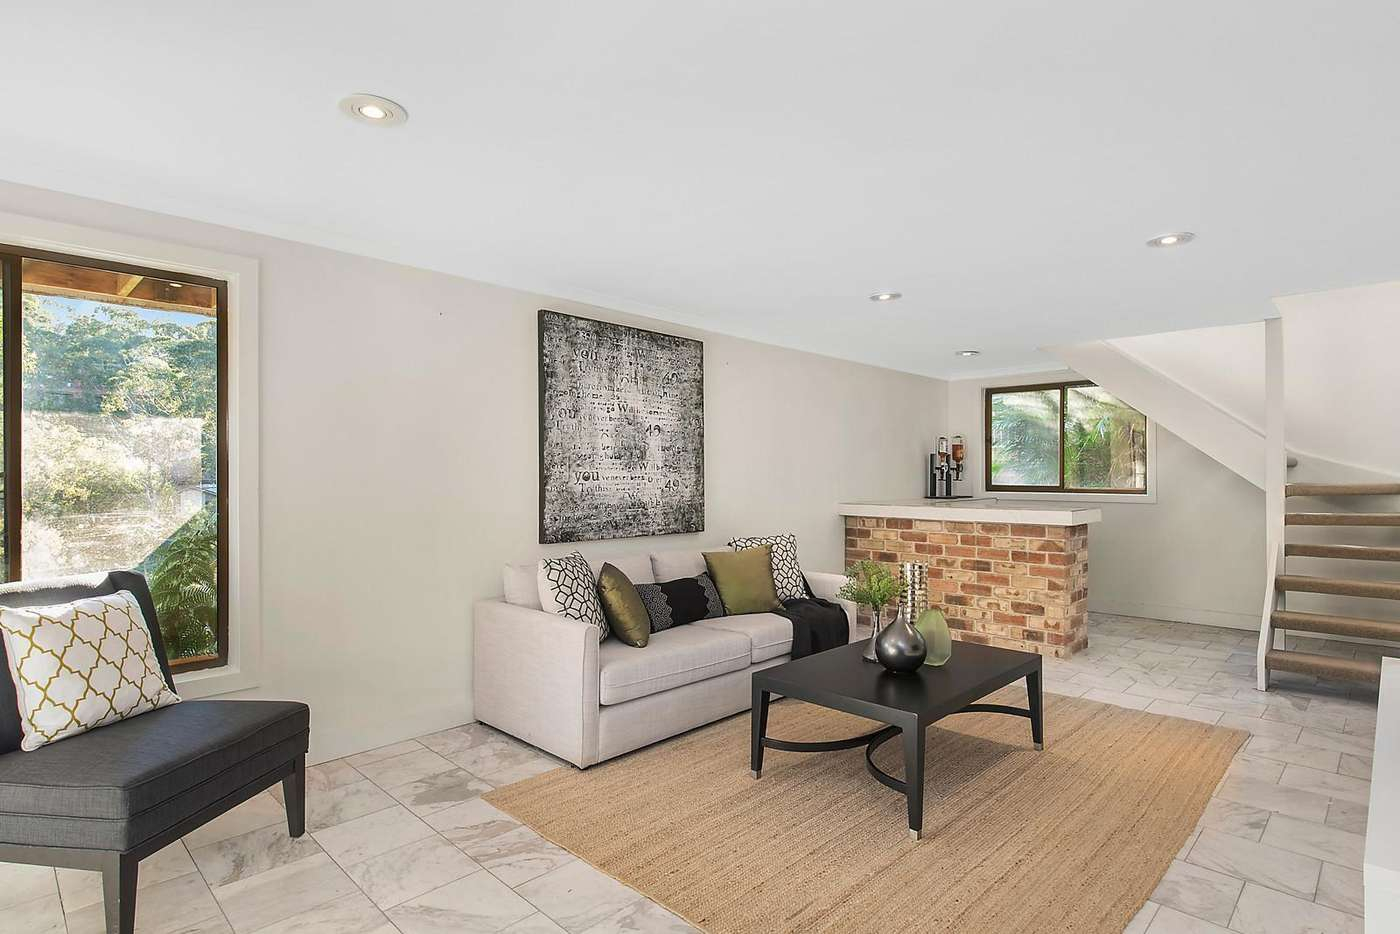 Fifth view of Homely house listing, 26 Valley Way, Gymea Bay NSW 2227